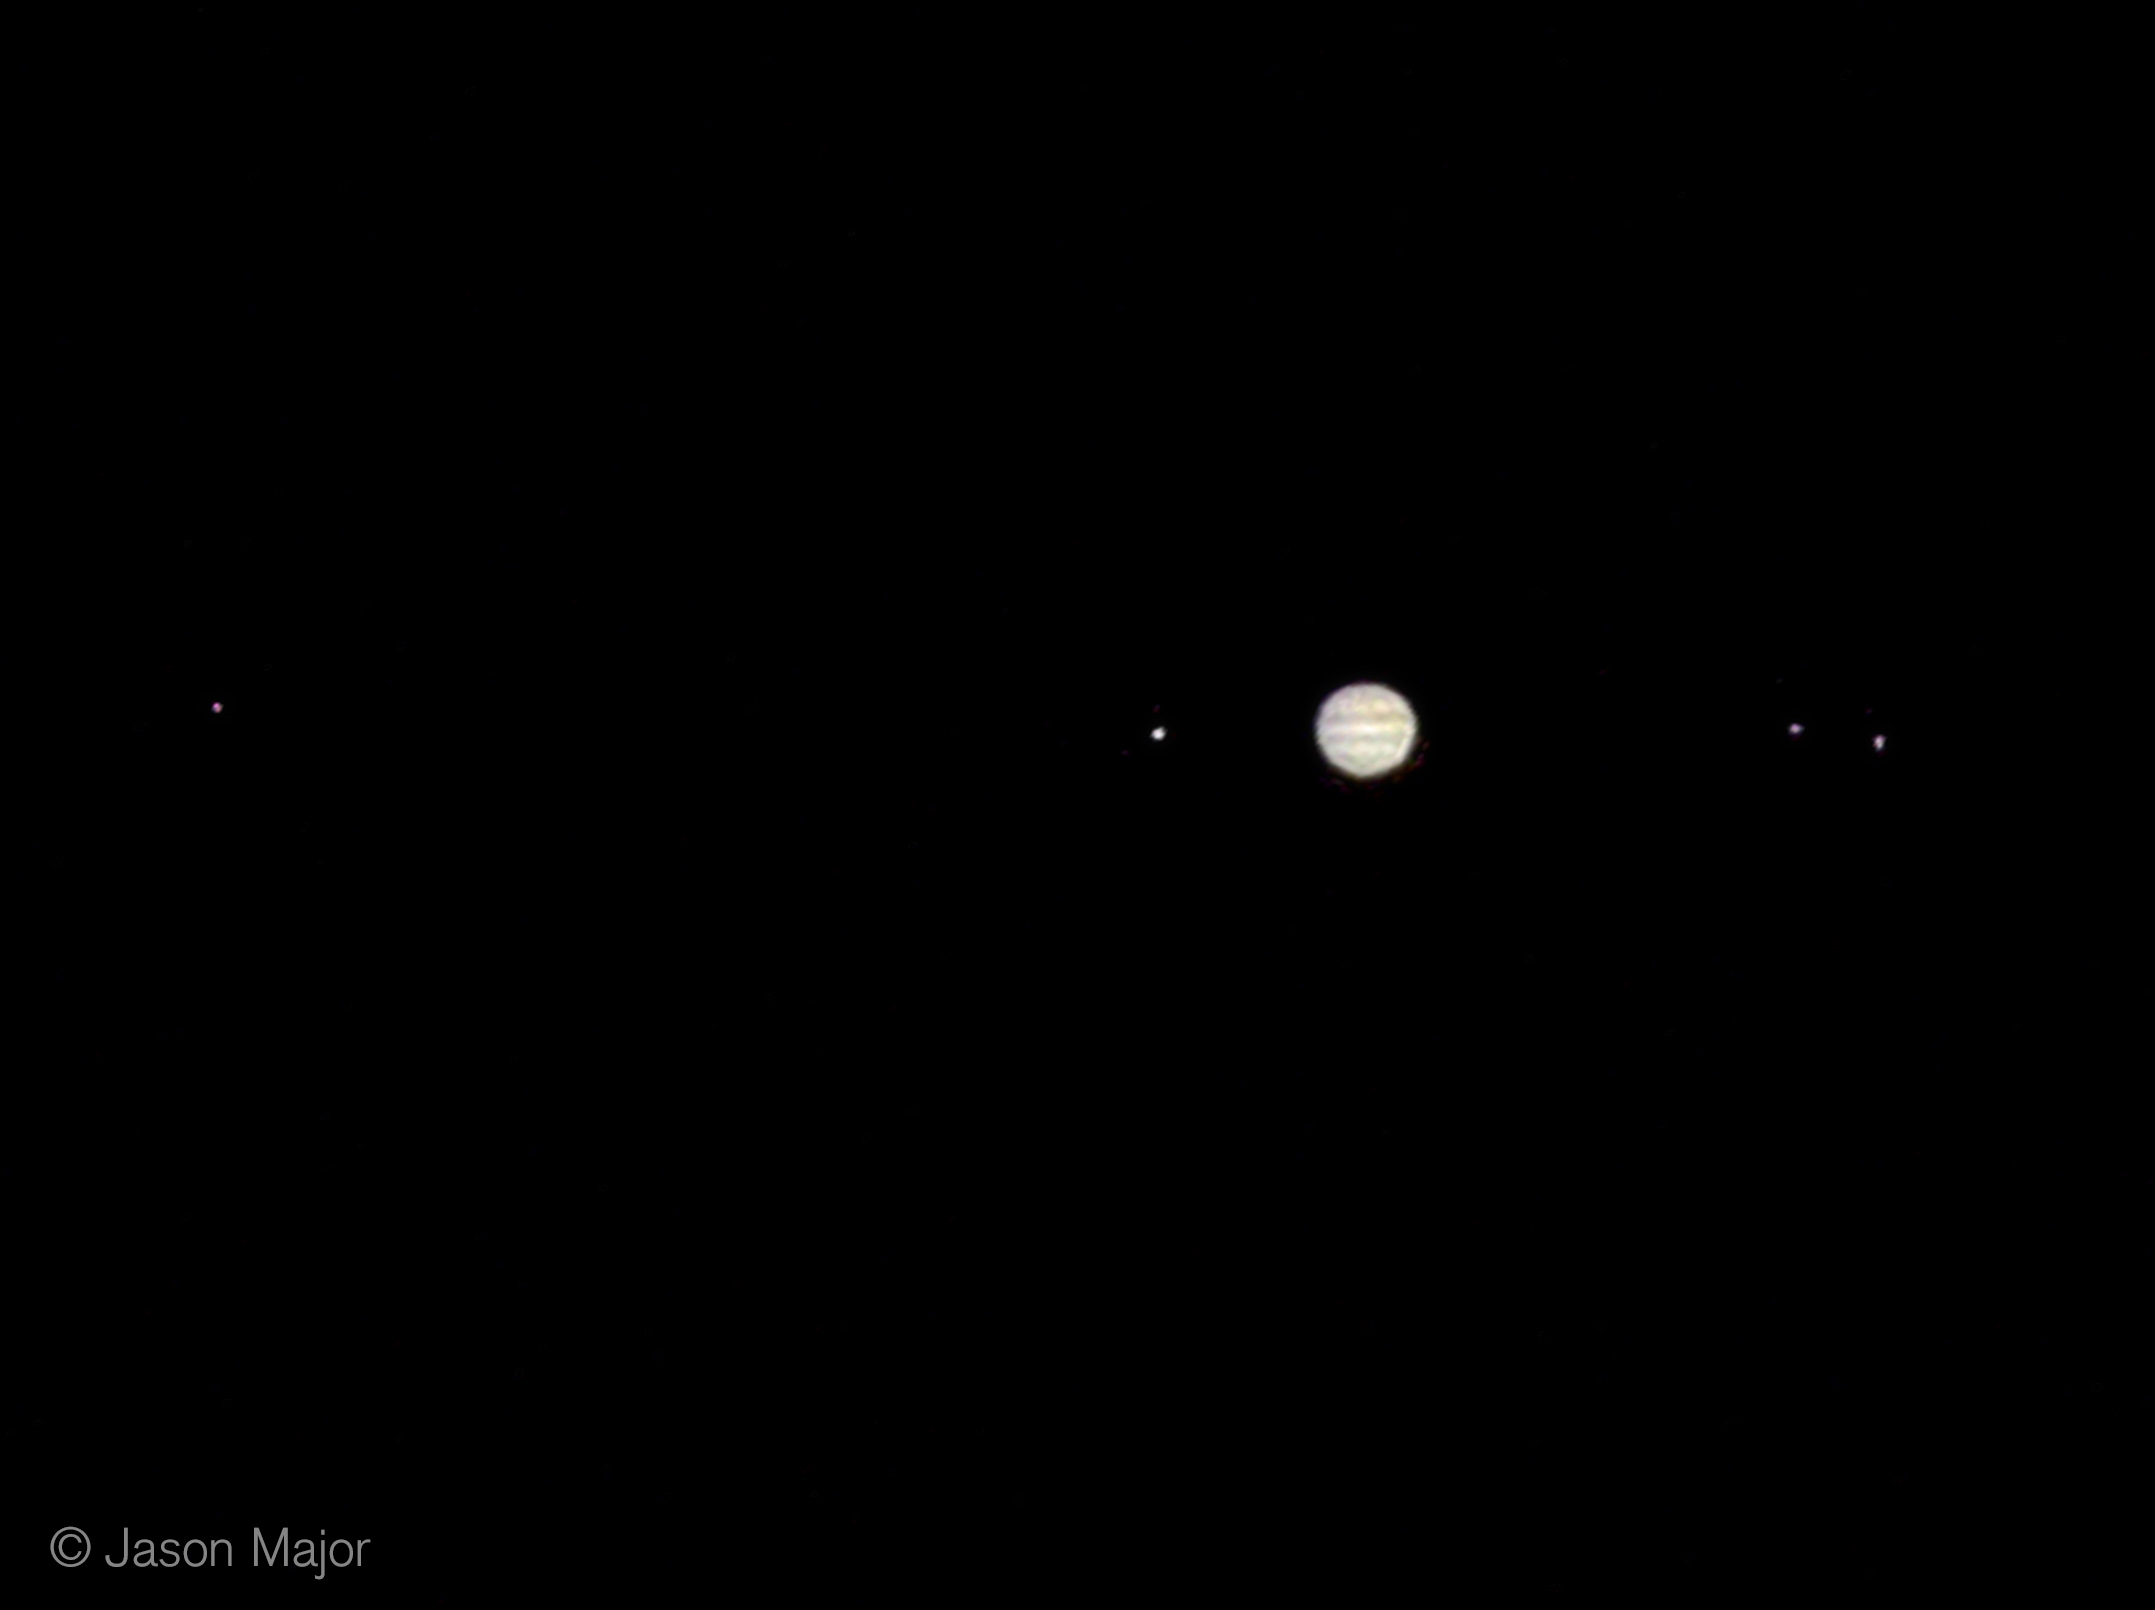 jupiter and the galilean satellites essay Europa i is the sixth closest moon of the planet jupiter, and the smallest of its four galilean satellites, but still one of the largest moons in the solar system.